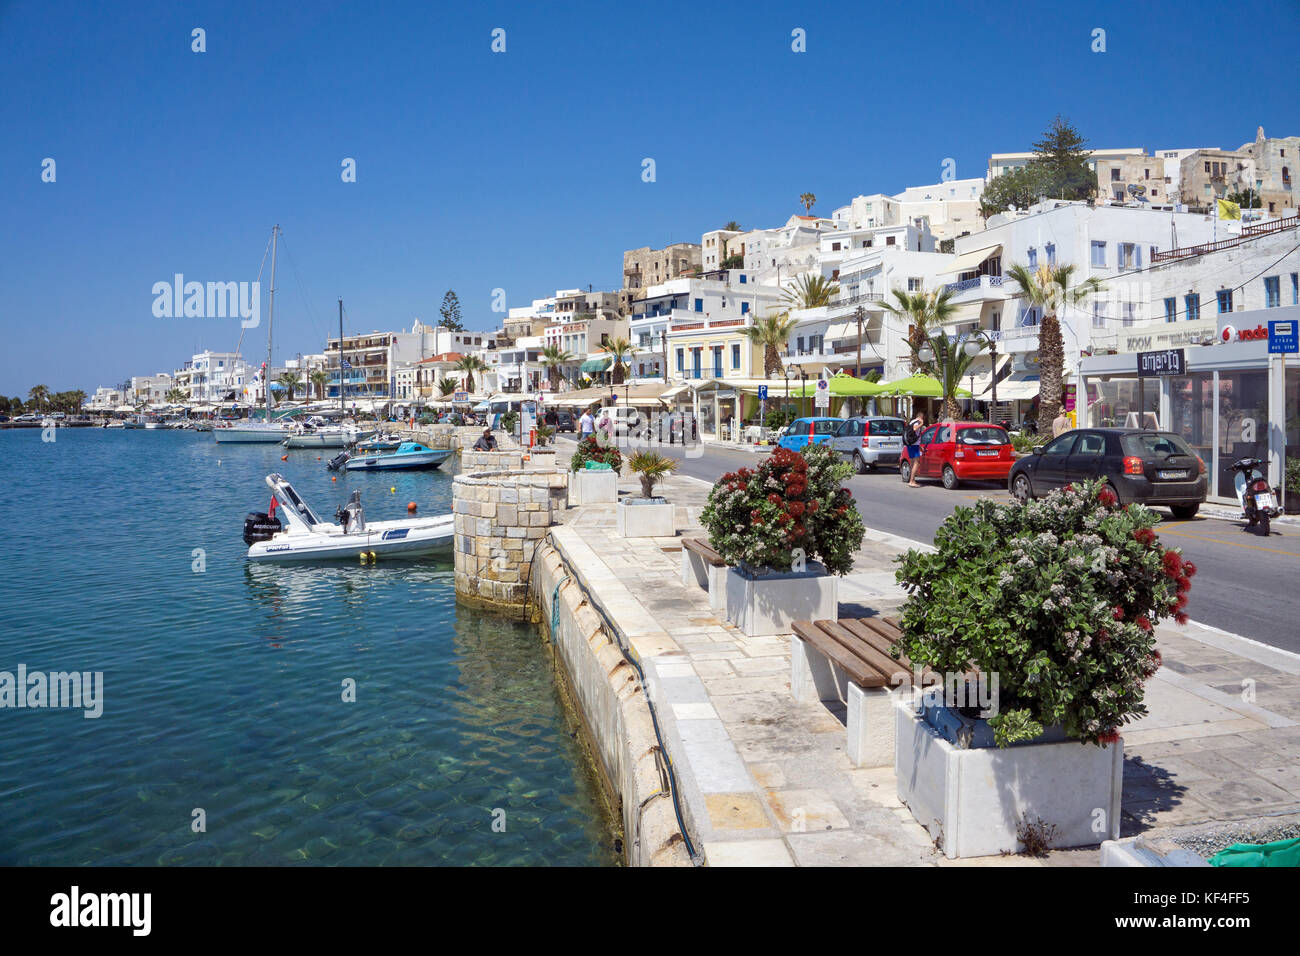 Harbour promenade at Naxos-town, Naxos, Cyclades, Aegean, Greece - Stock Image